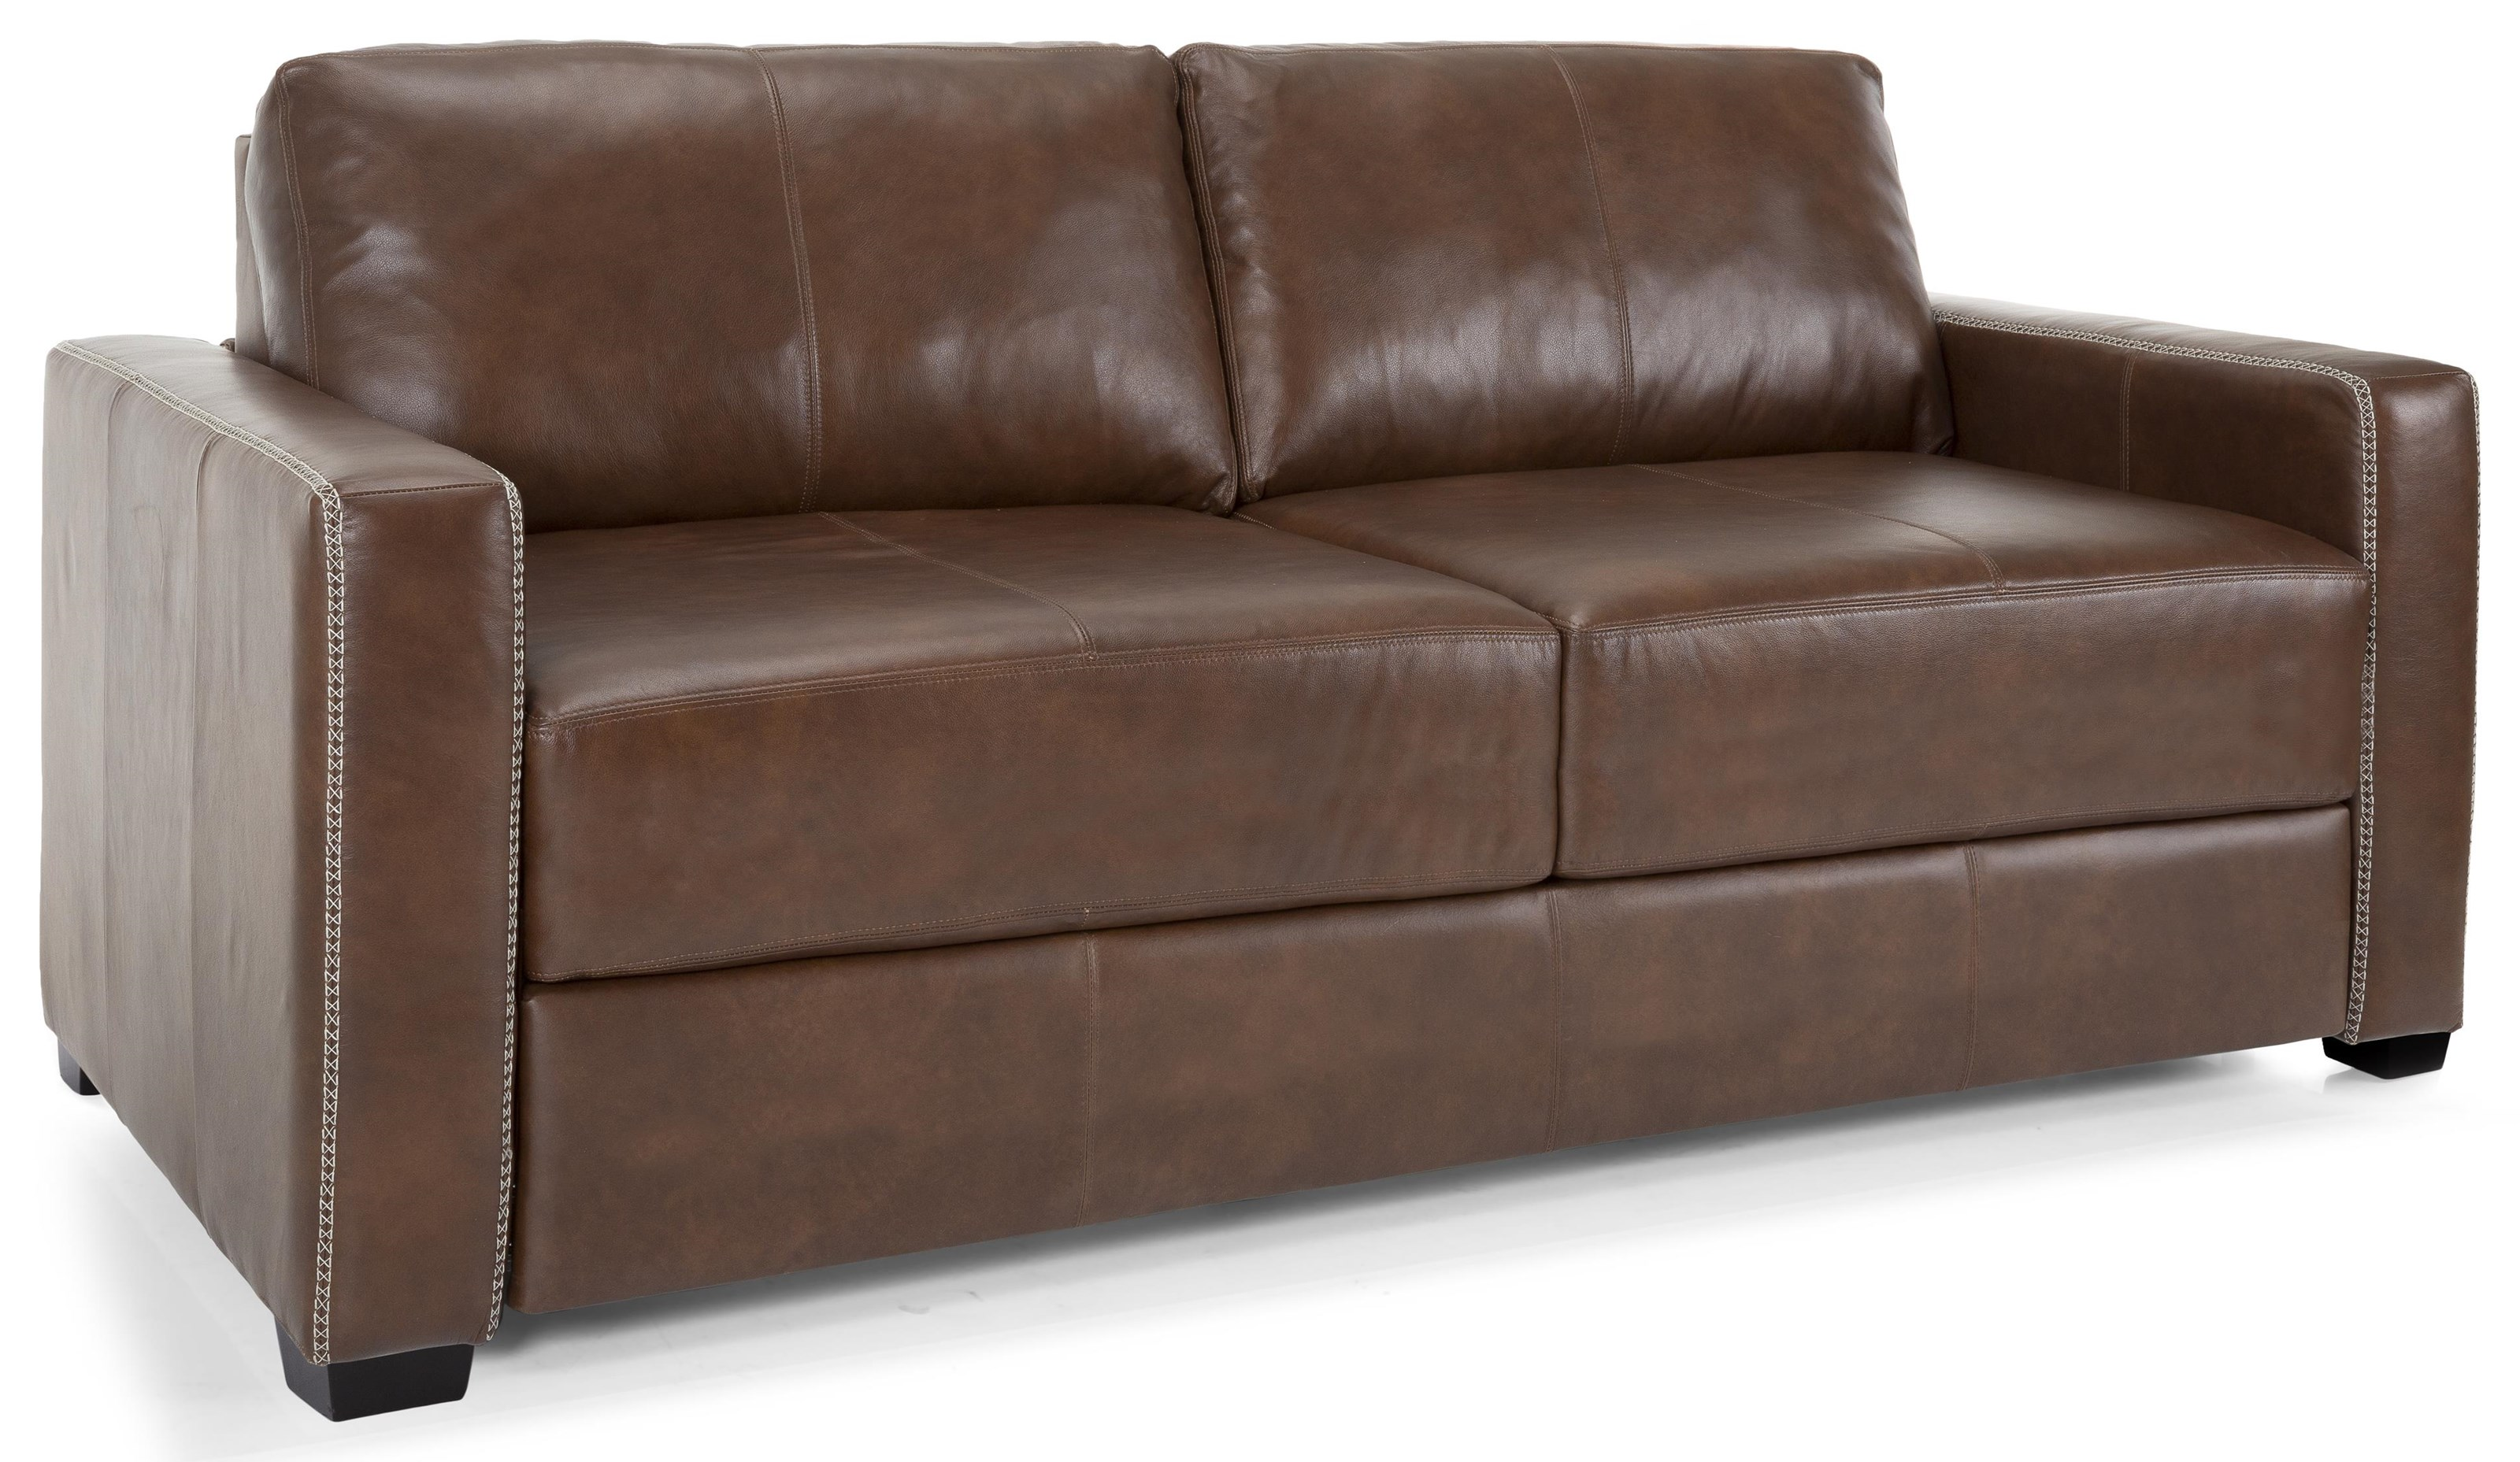 Calico Leather Queen Sofabed by Taelor Designs at Bennett's Furniture and Mattresses